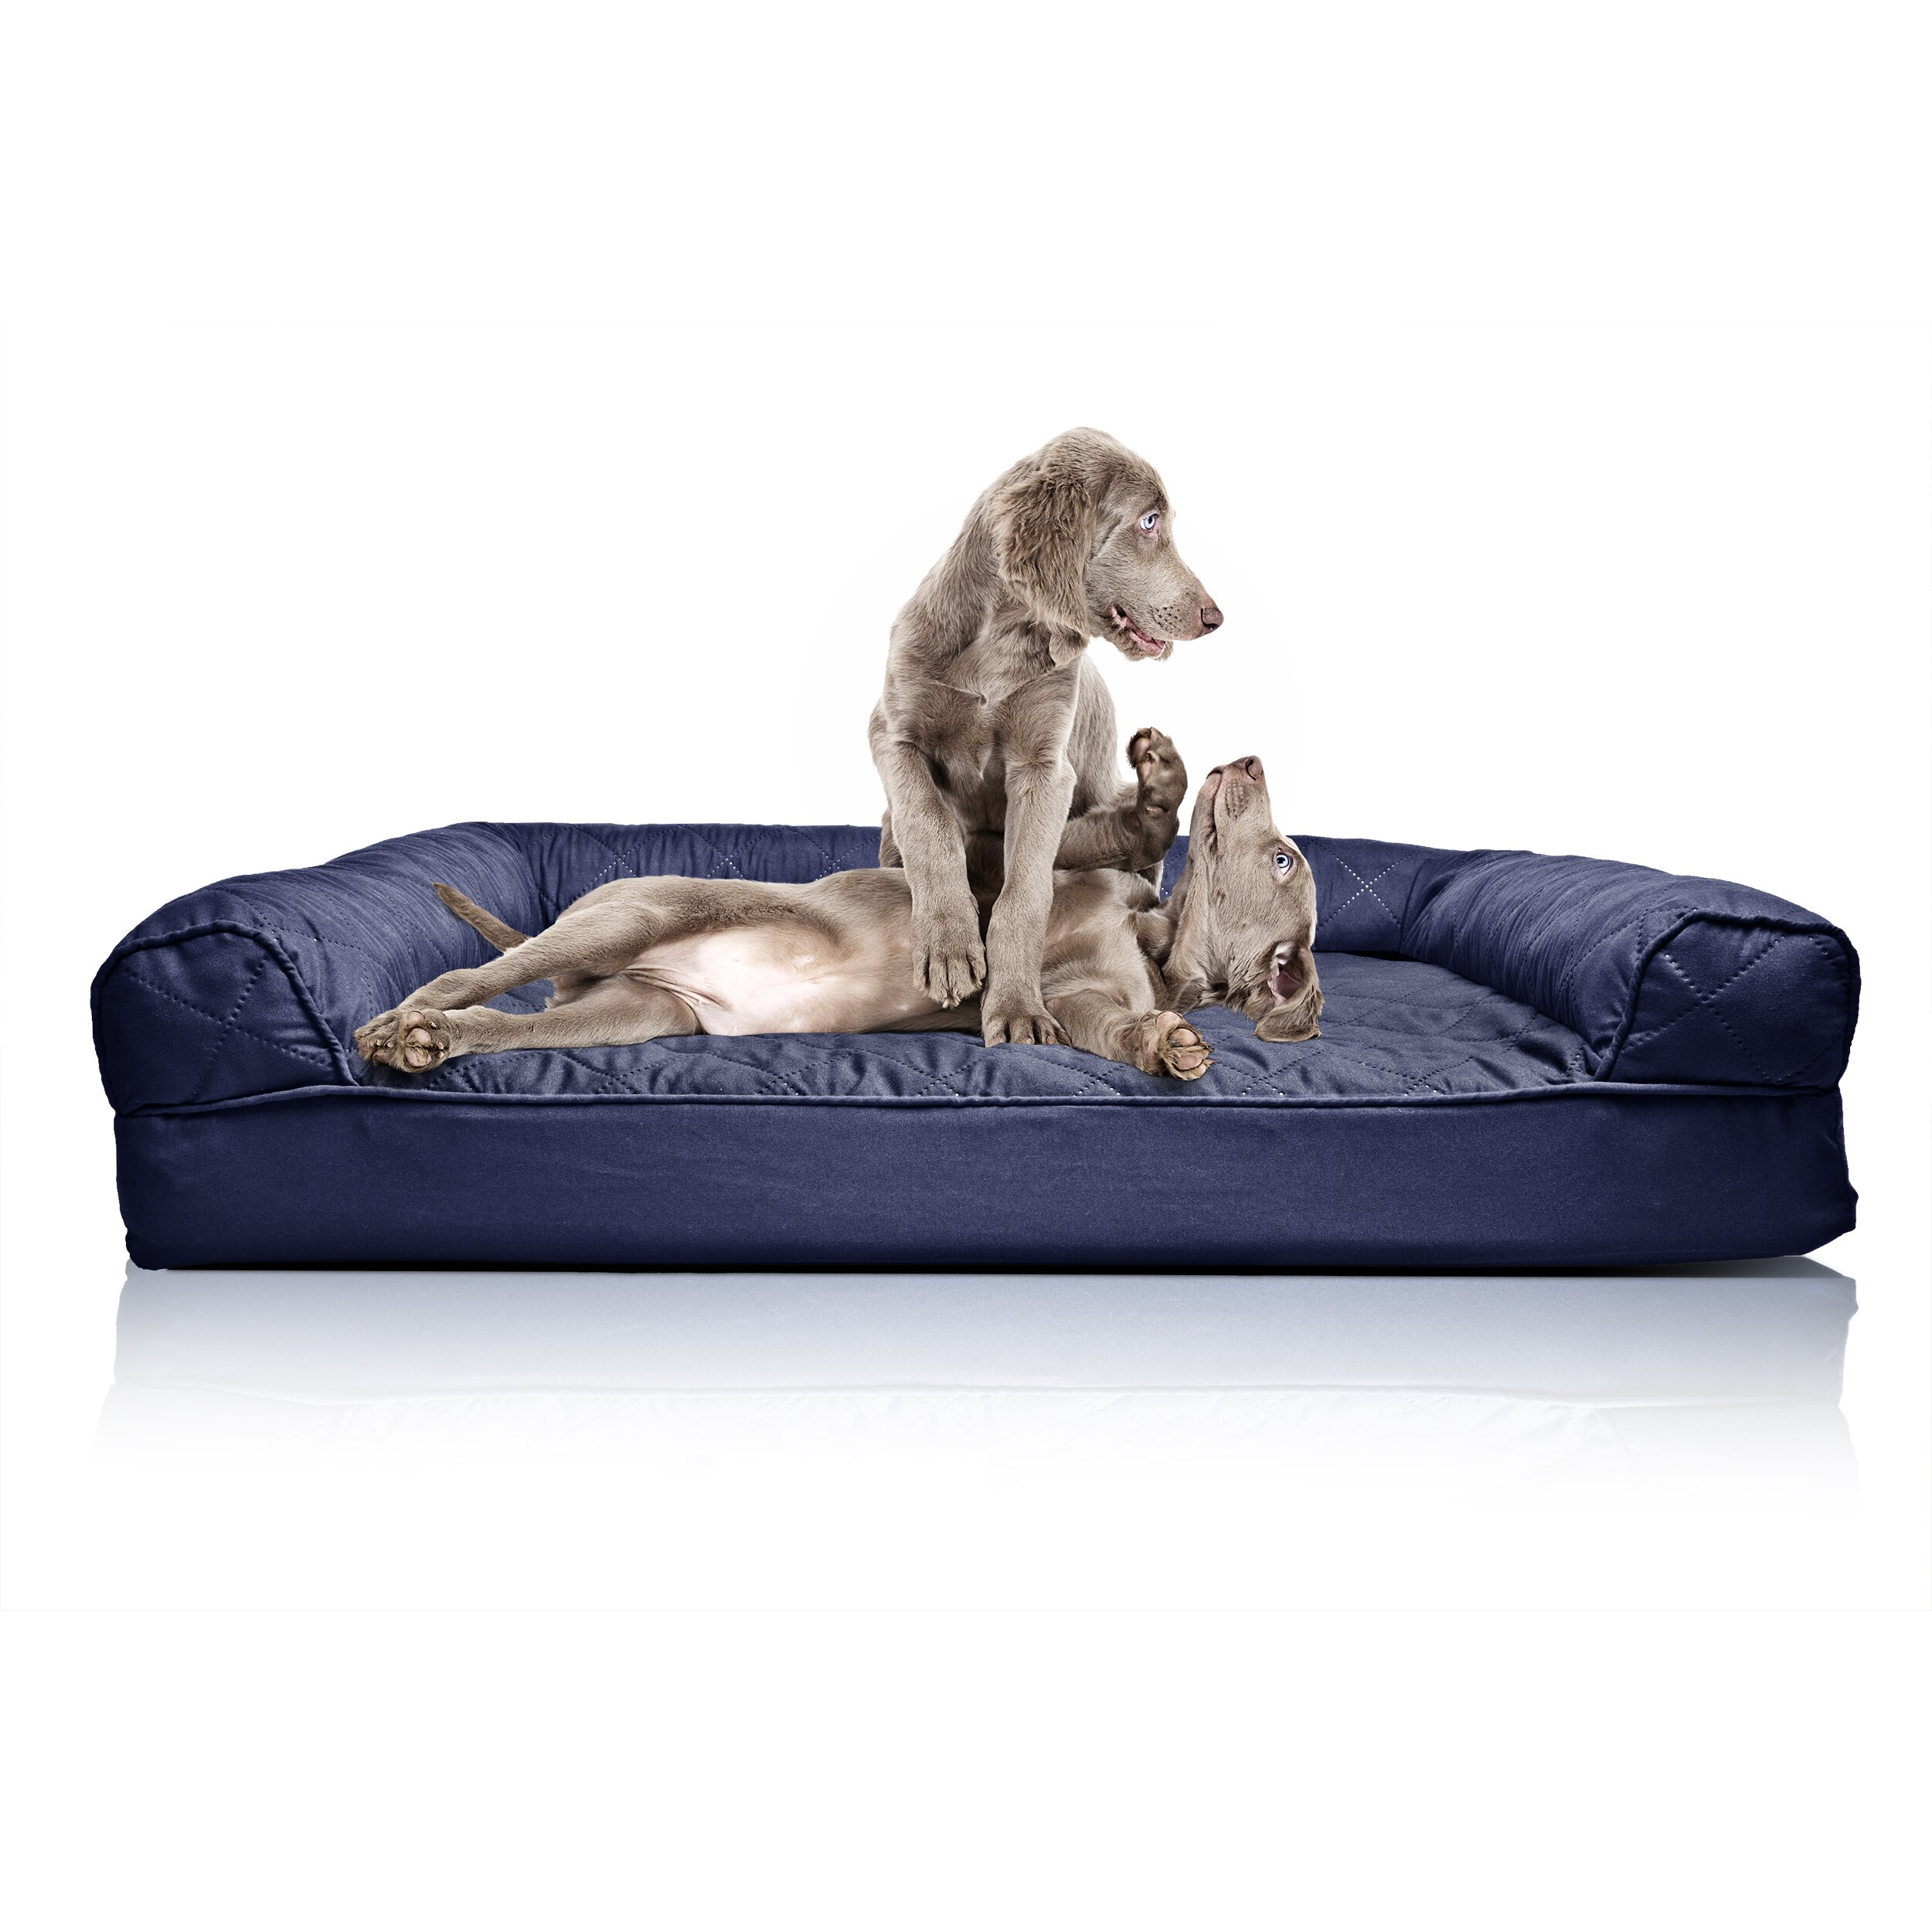 Dog beds that look like couches - Sofa Like Dog Beds Noten Animals